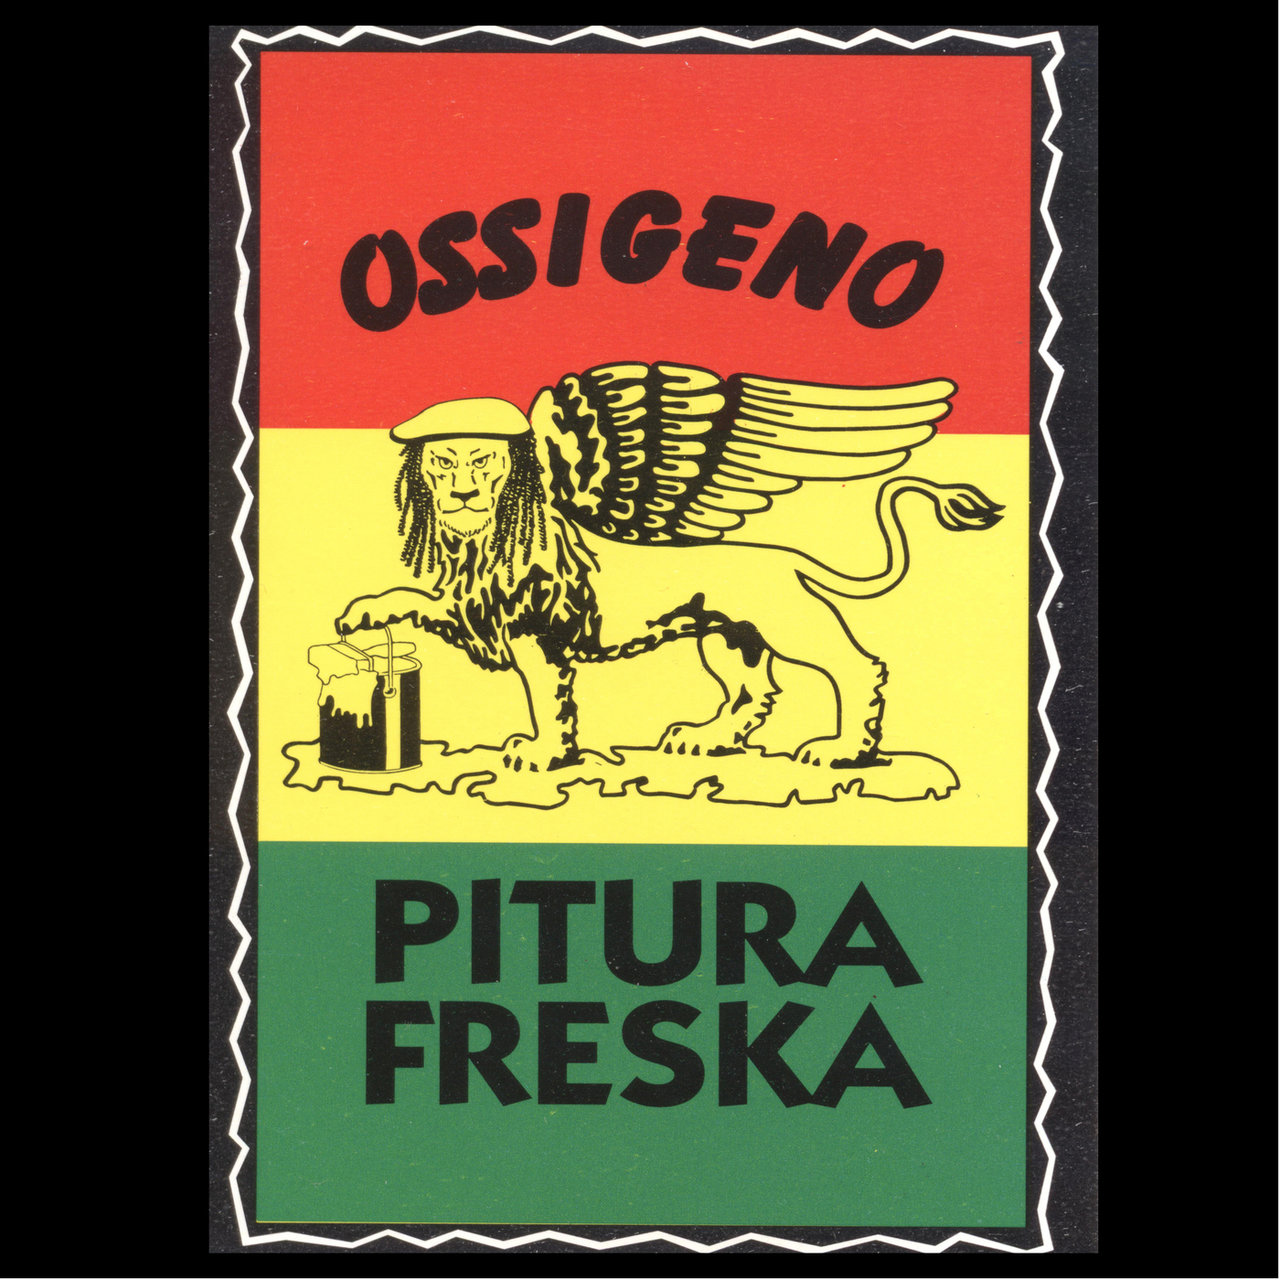 Pitura Freska Pin Floi Listen To Ossigeno By Pitura Freska On Tidal